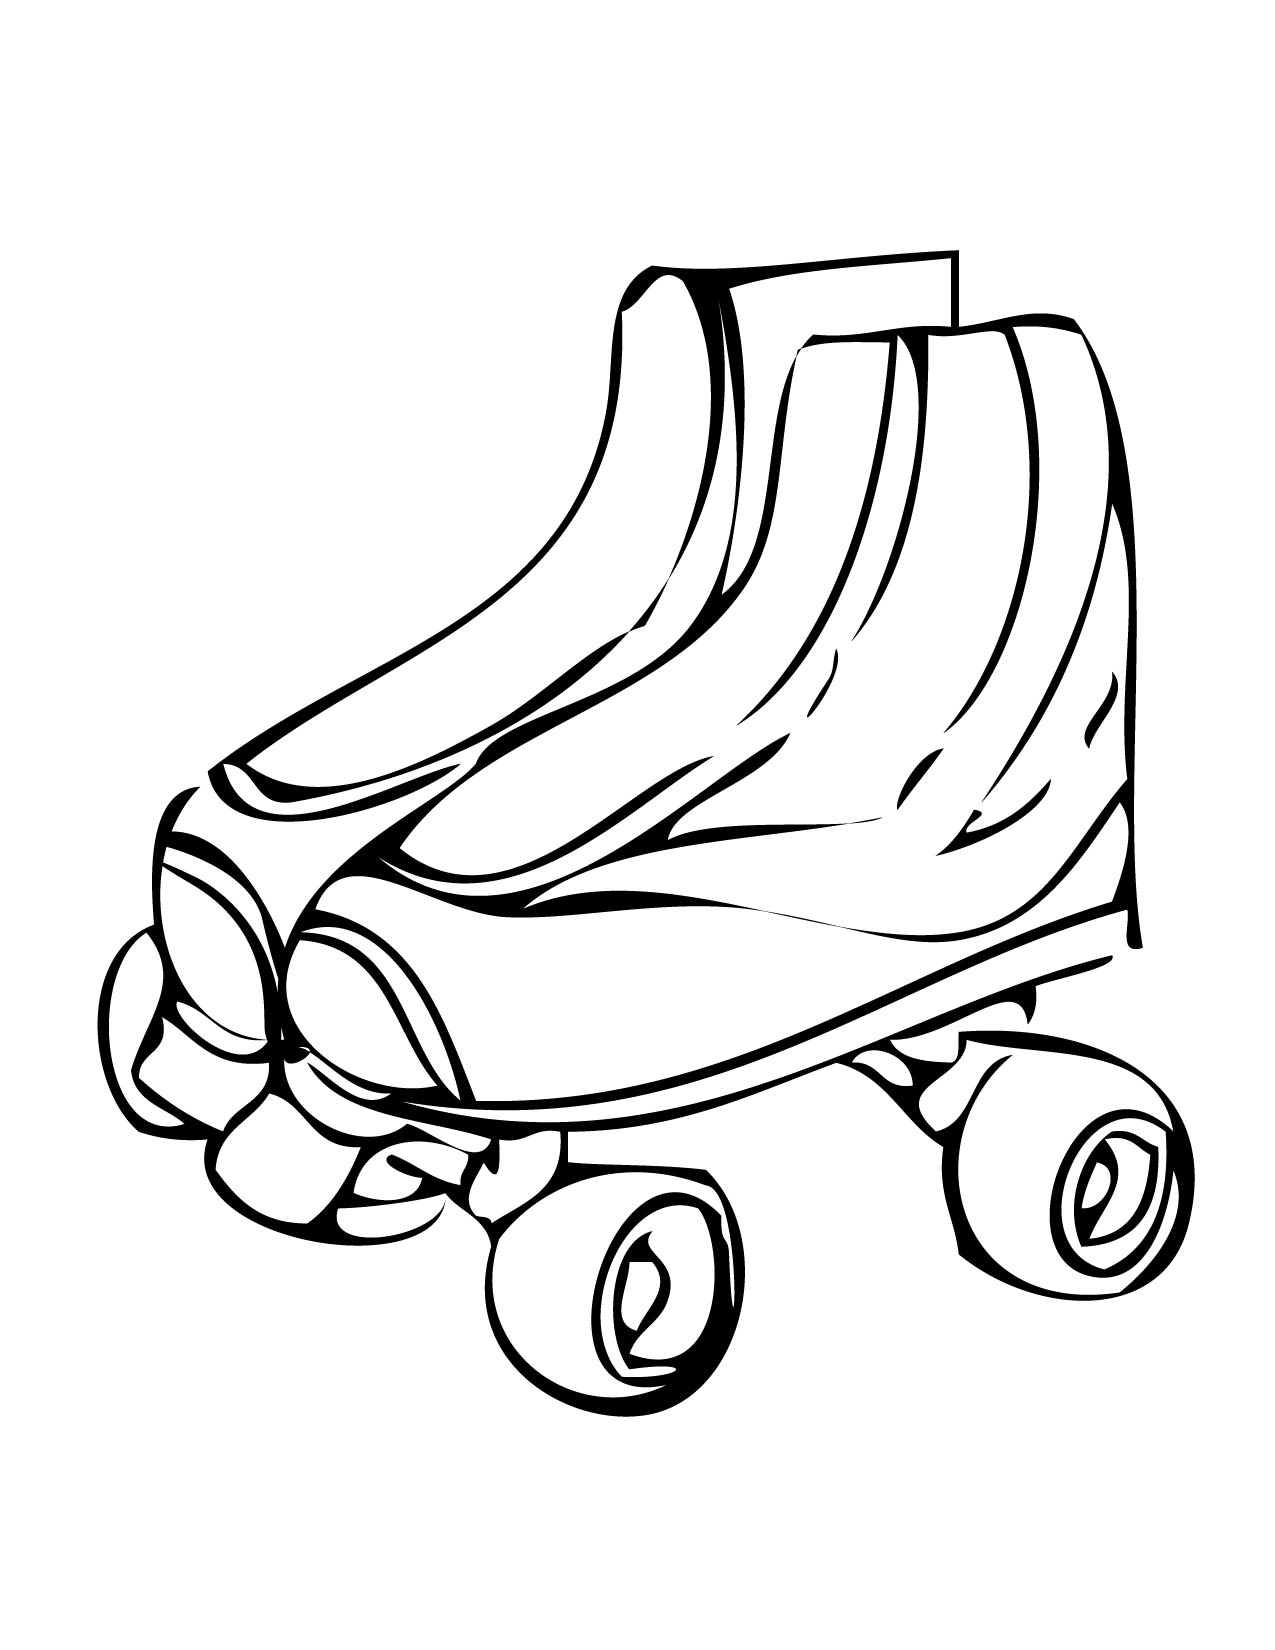 Roller Skate Clipart - Cliparts.co